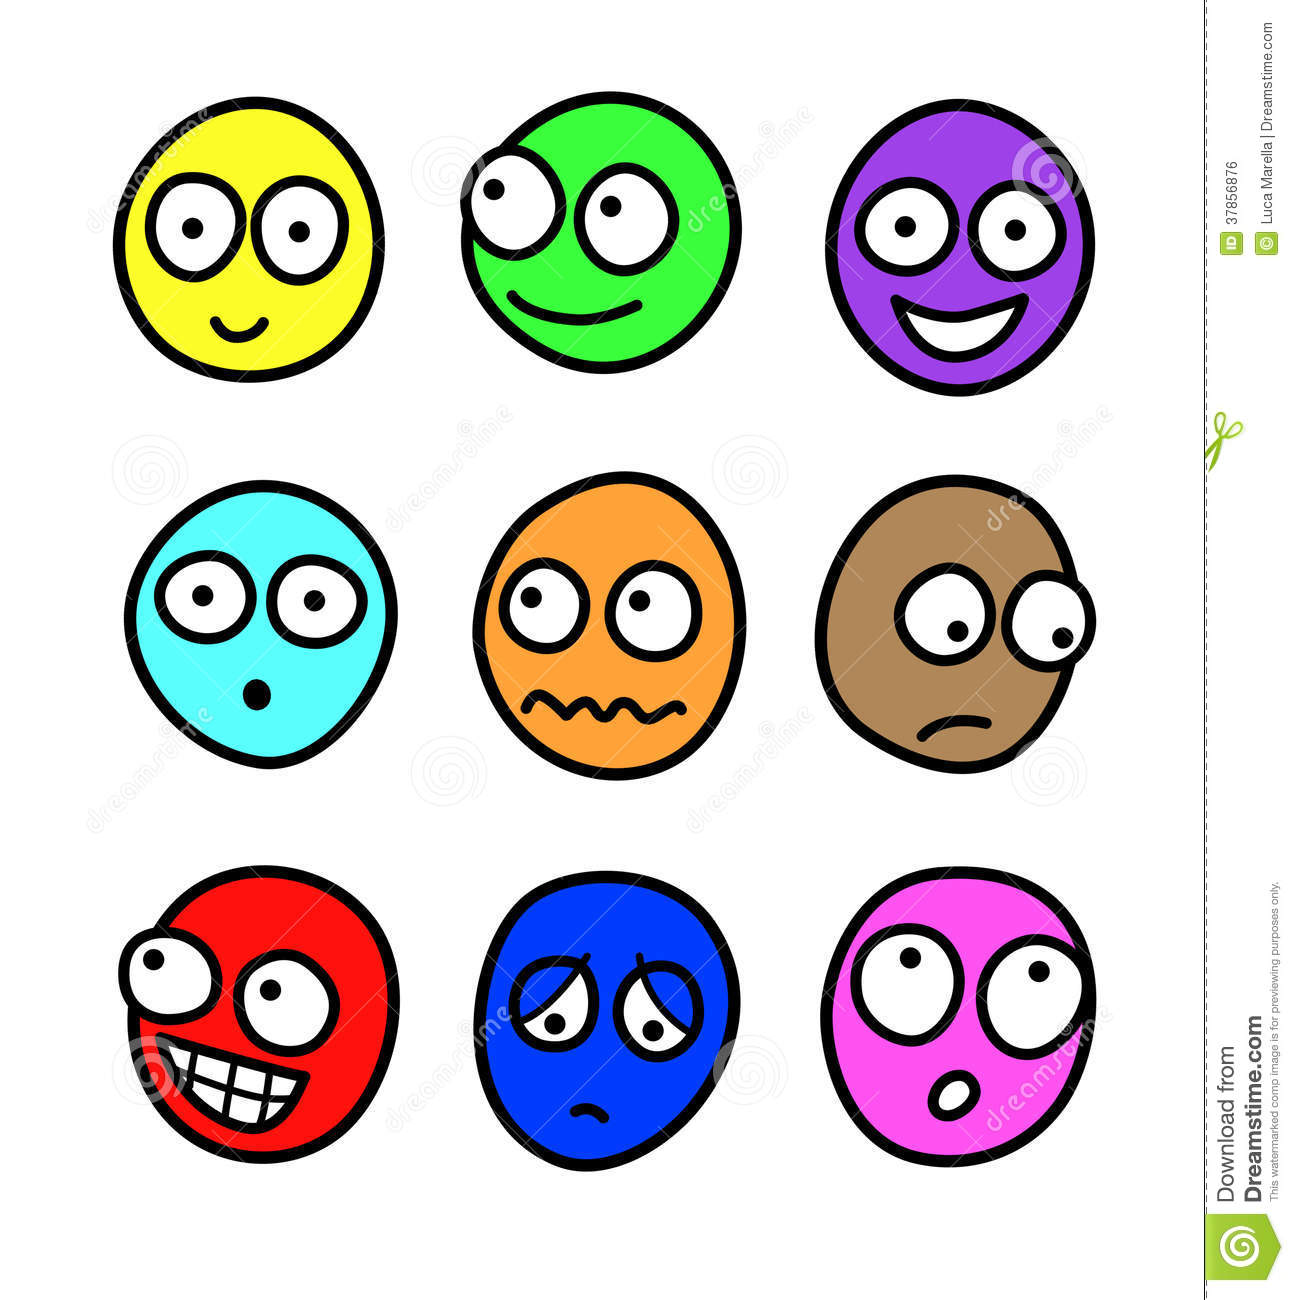 Stock Image Basketball Ball Face Vector Image Image10361811 likewise Big Purple Halloween Monster Image45838287 further Stock Illustration Cartoon Shark Isolated White Background Illustration Image60002041 together with Picture Of Homework as well Social Ignore. on angry cartoon mouth